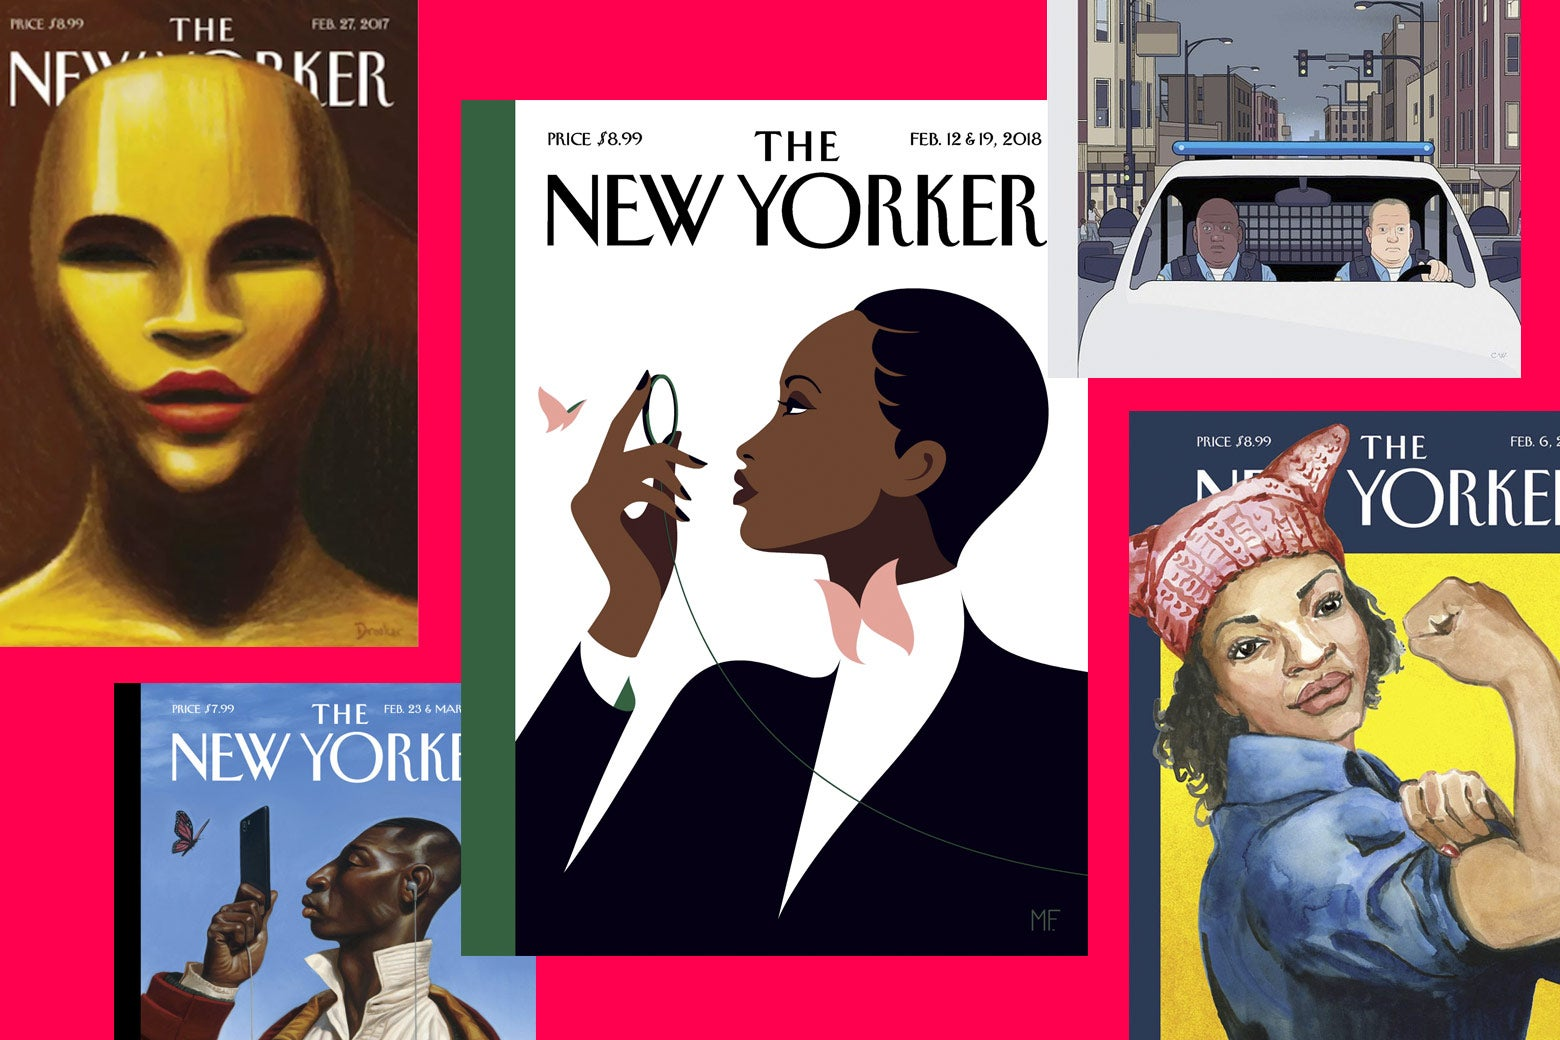 Five recent New Yorker covers featuring black people (including the one of Eustace Tilley as a black woman).